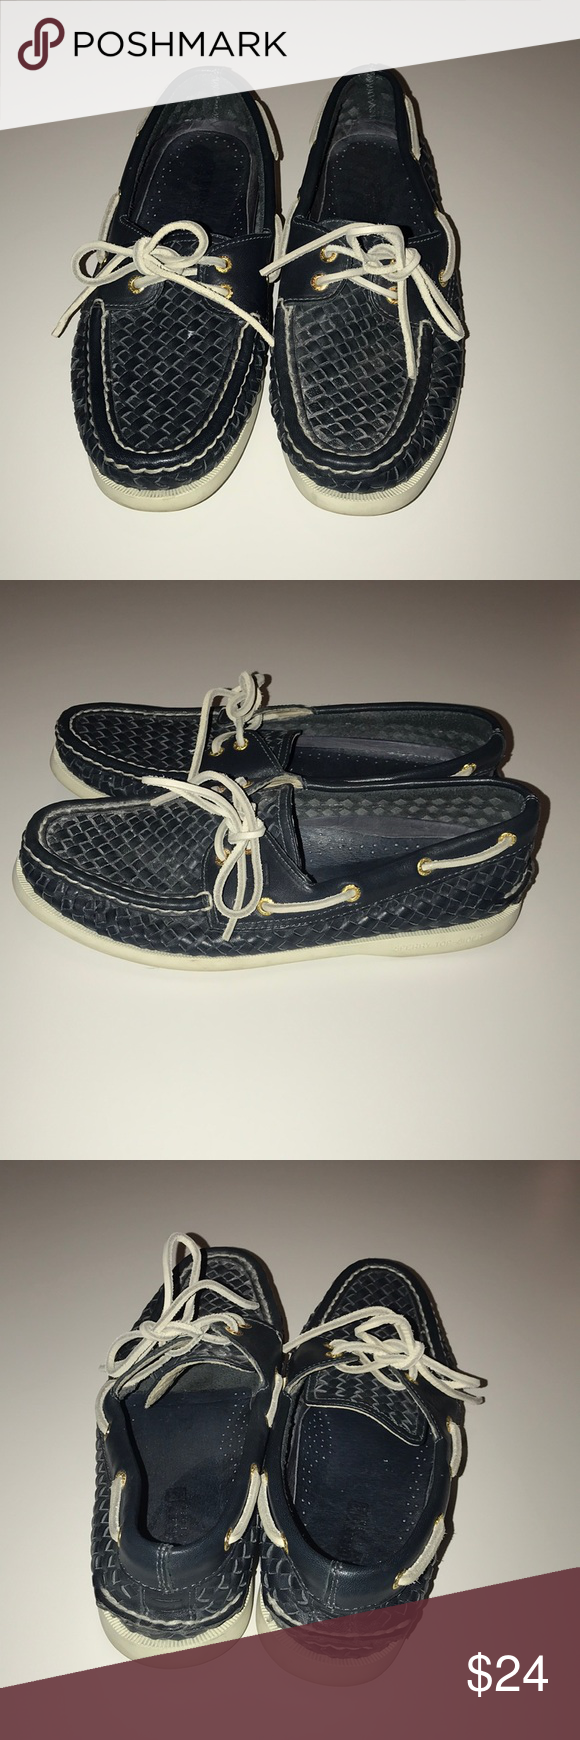 24 Best Nautical Dreams | Sperry Inspired images | Sperrys